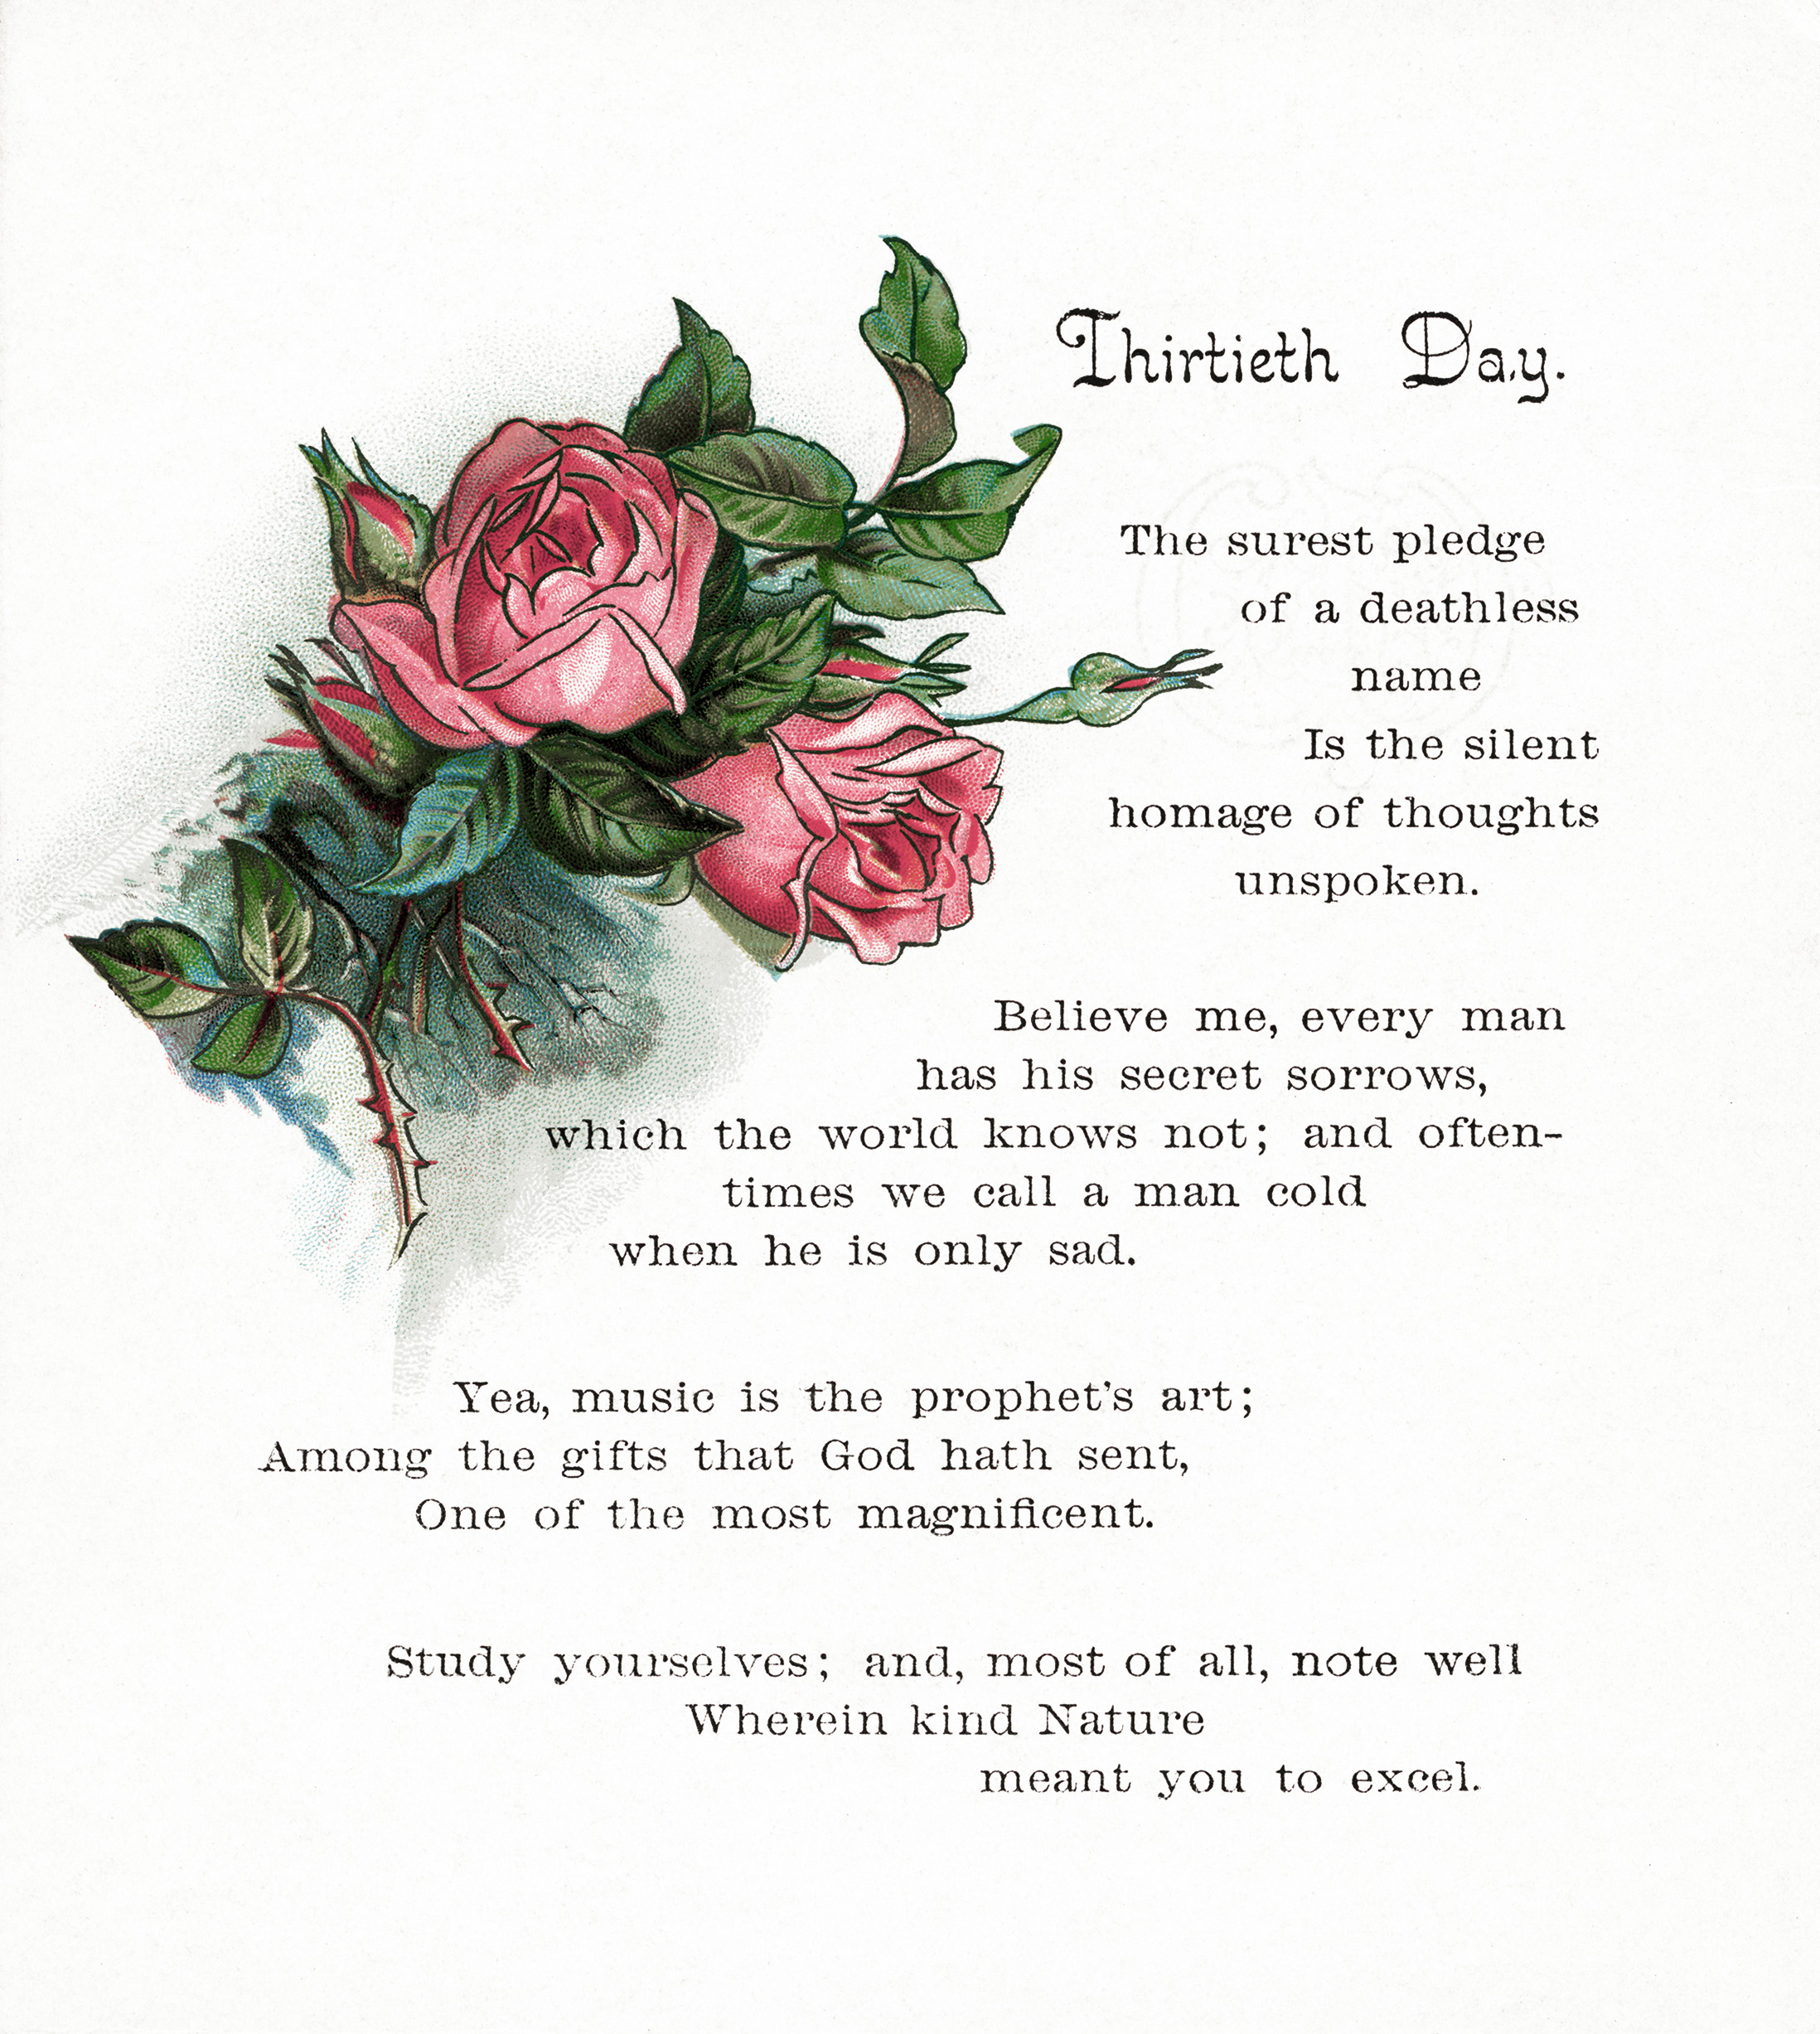 Free Vintage Image Thirtieth Day Poem And Pink Roses Old